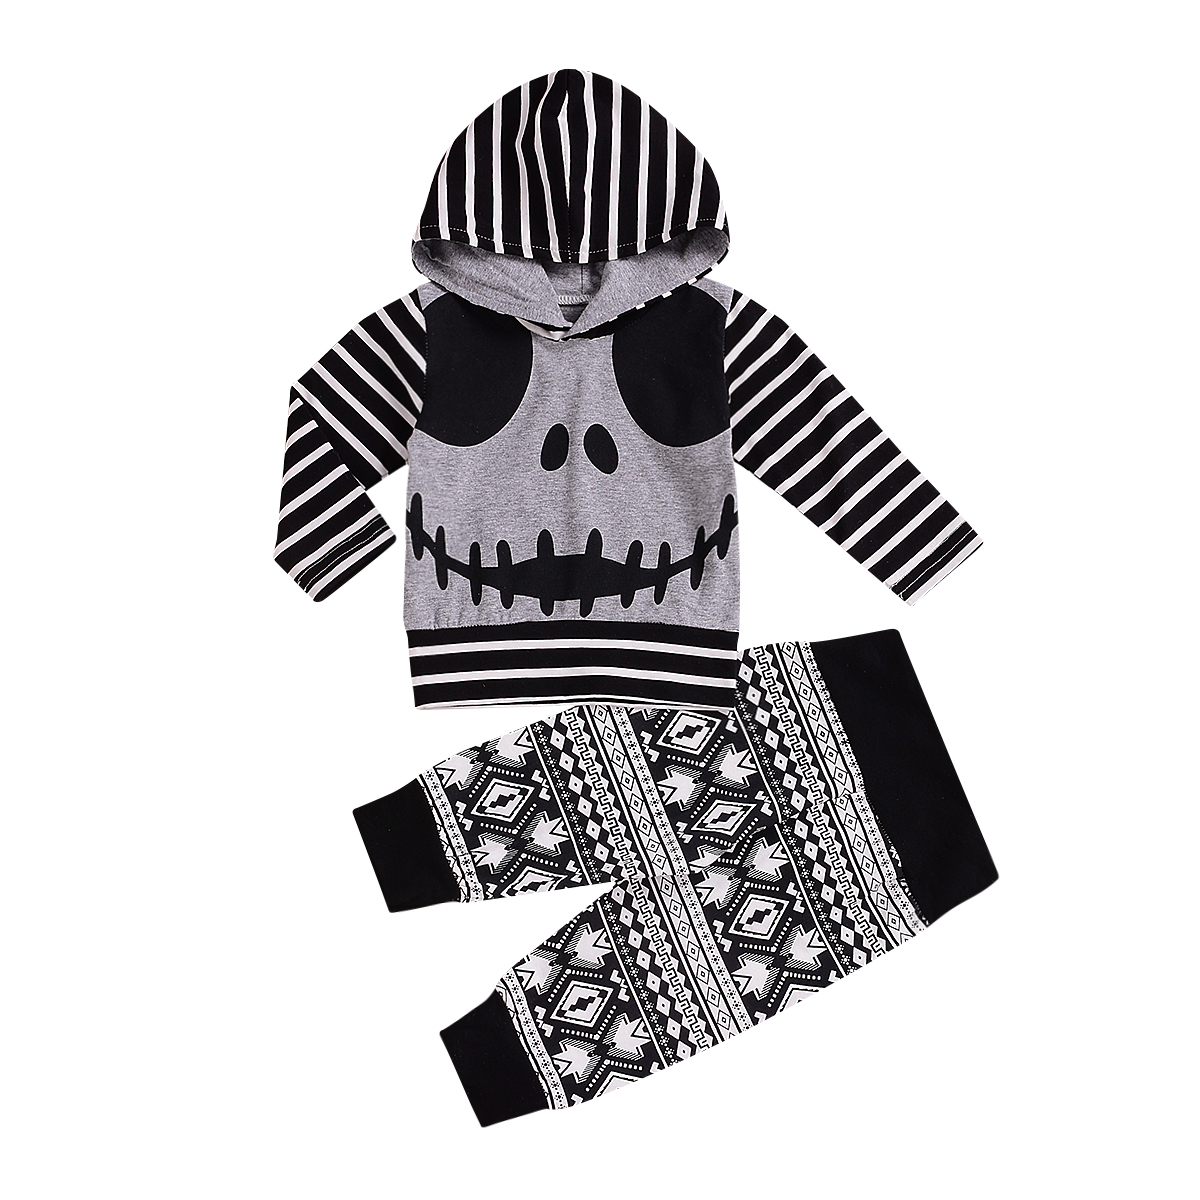 Emmababy 2018 Halloween Toddler Baby Boys Tops Hoodie Skull Striped Pants Outfits 2Pcs Set Autumn Clothes 0-24M цена 2017